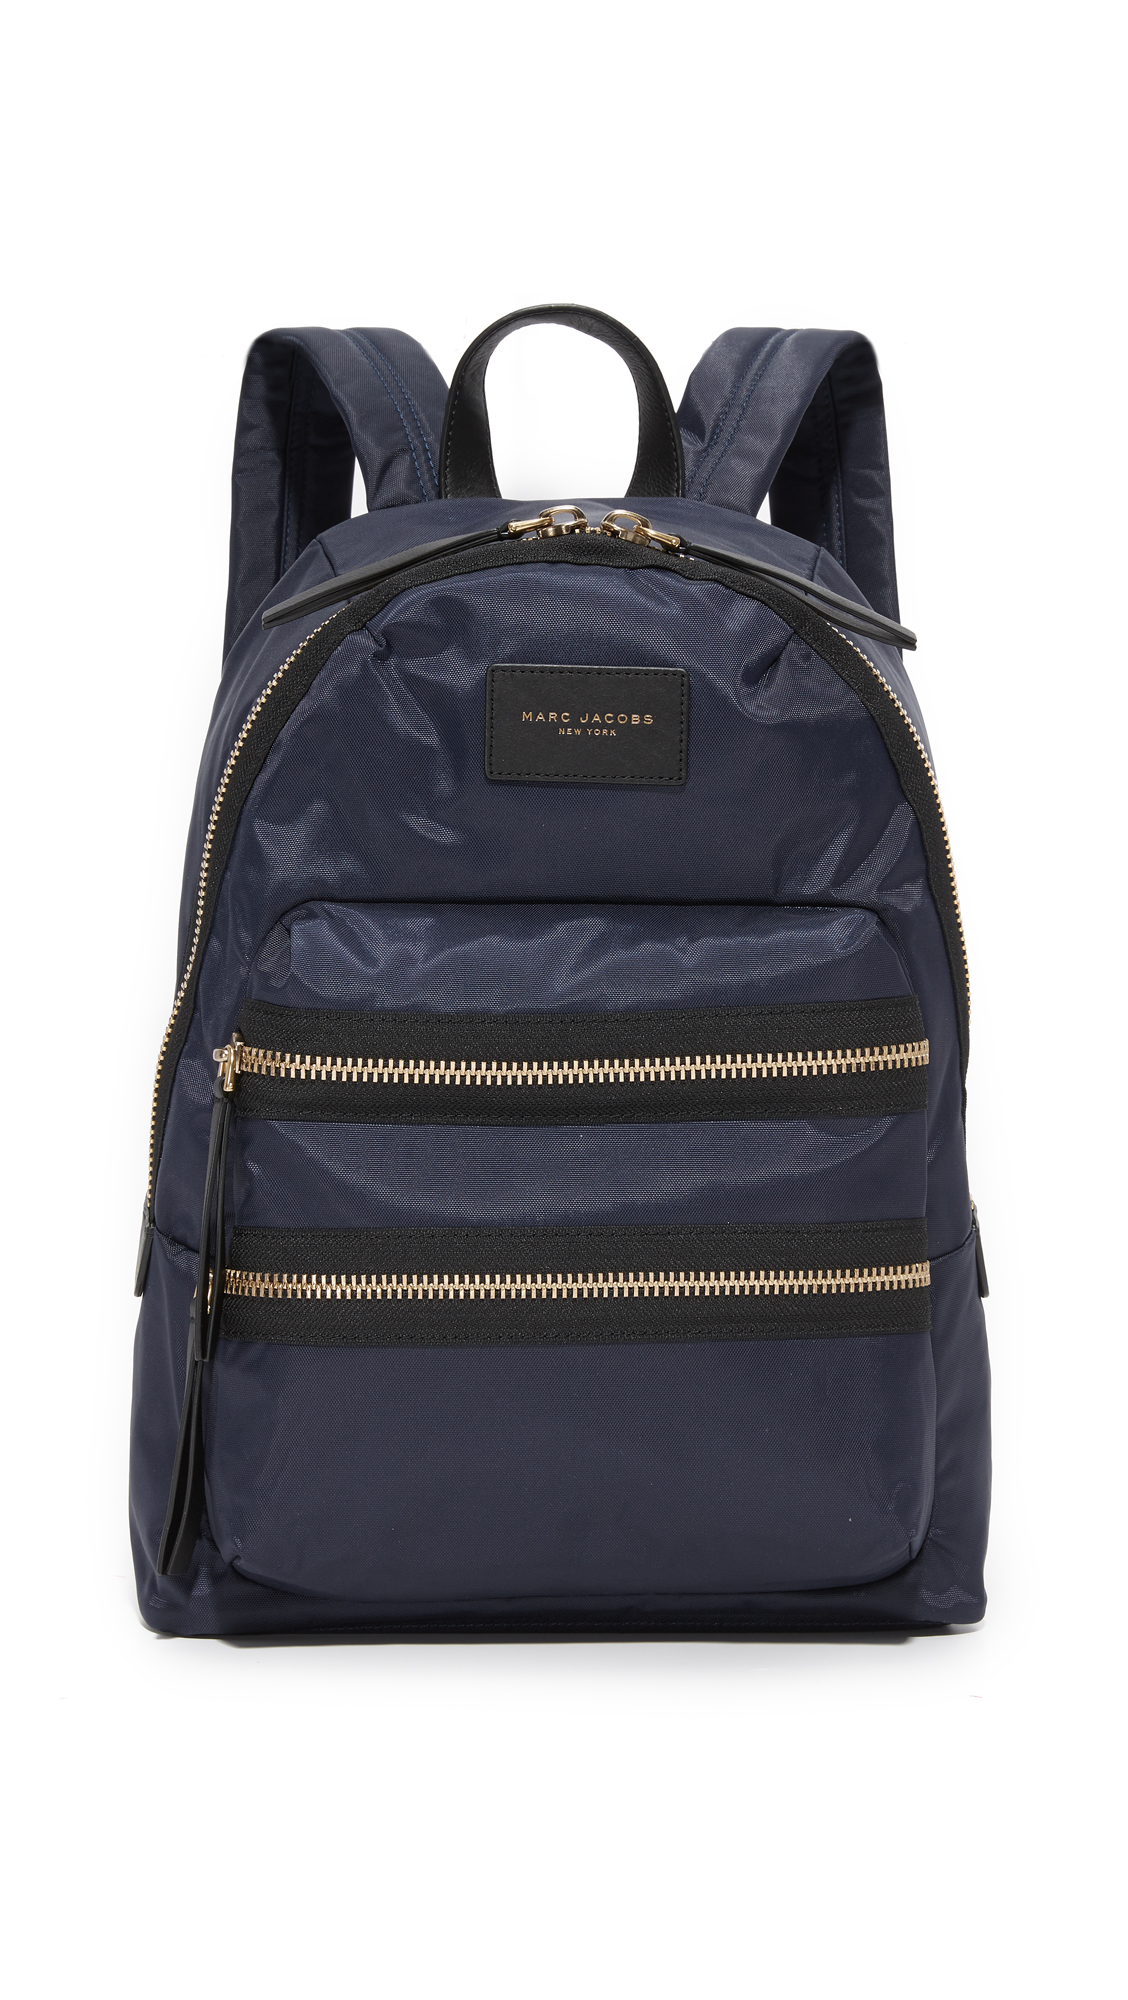 850cd290a014 Marc Jacobs Nylon Biker Backpack